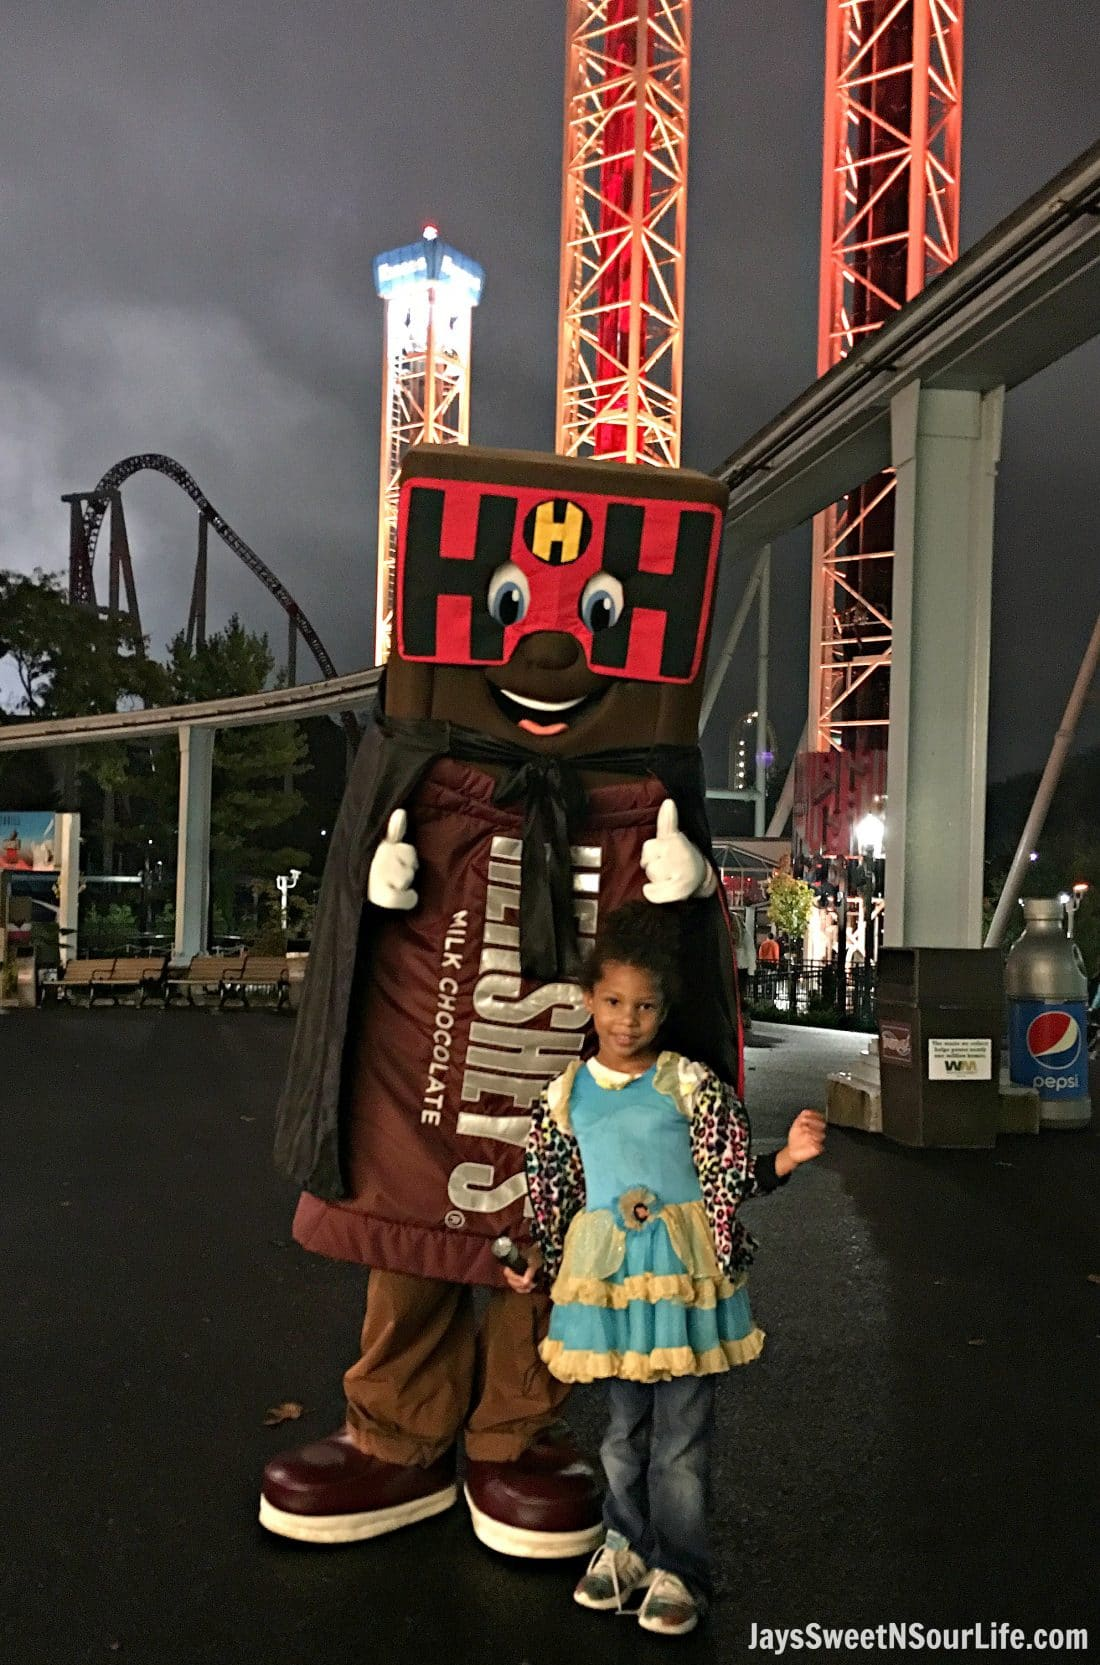 Hersheypark is hosting their annual Hersheypark in The Dark event as well as their Taste of Fall Fest. Read my 10 Tips For A Sweet Trip To Hersheypark In The Dark to help you plan a family-friendly trip to Hershey, PA. This event features the classic Trick or Treat Trail at Treatville and Creatures Of The Night® at ZooAmerica.